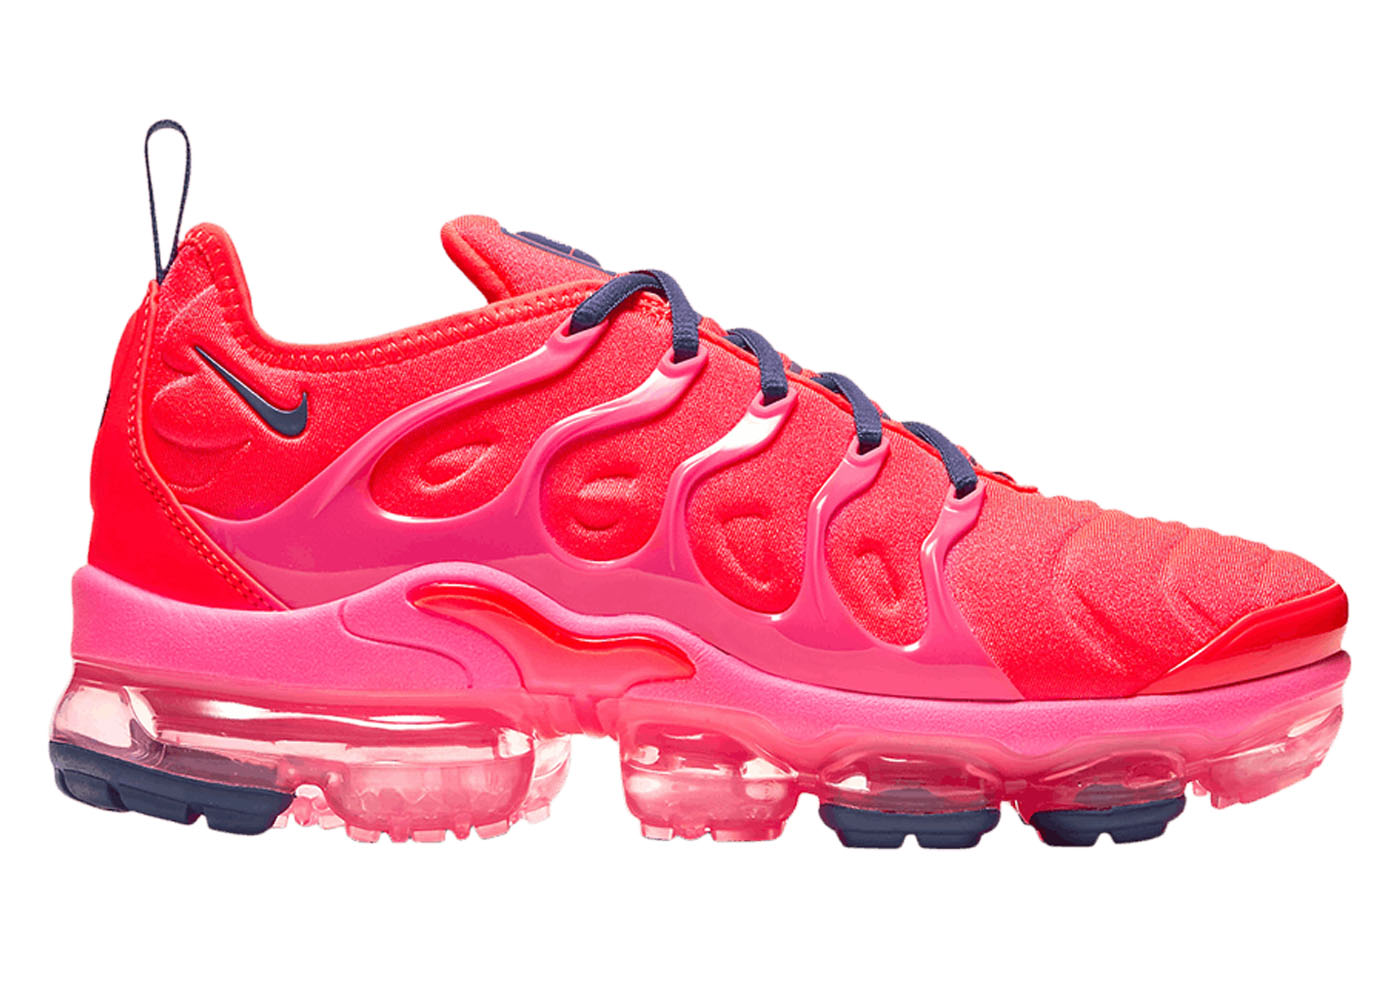 Nike Air VaporMax Plus Bright Crimson Pink Blast (W) - CU4907-600